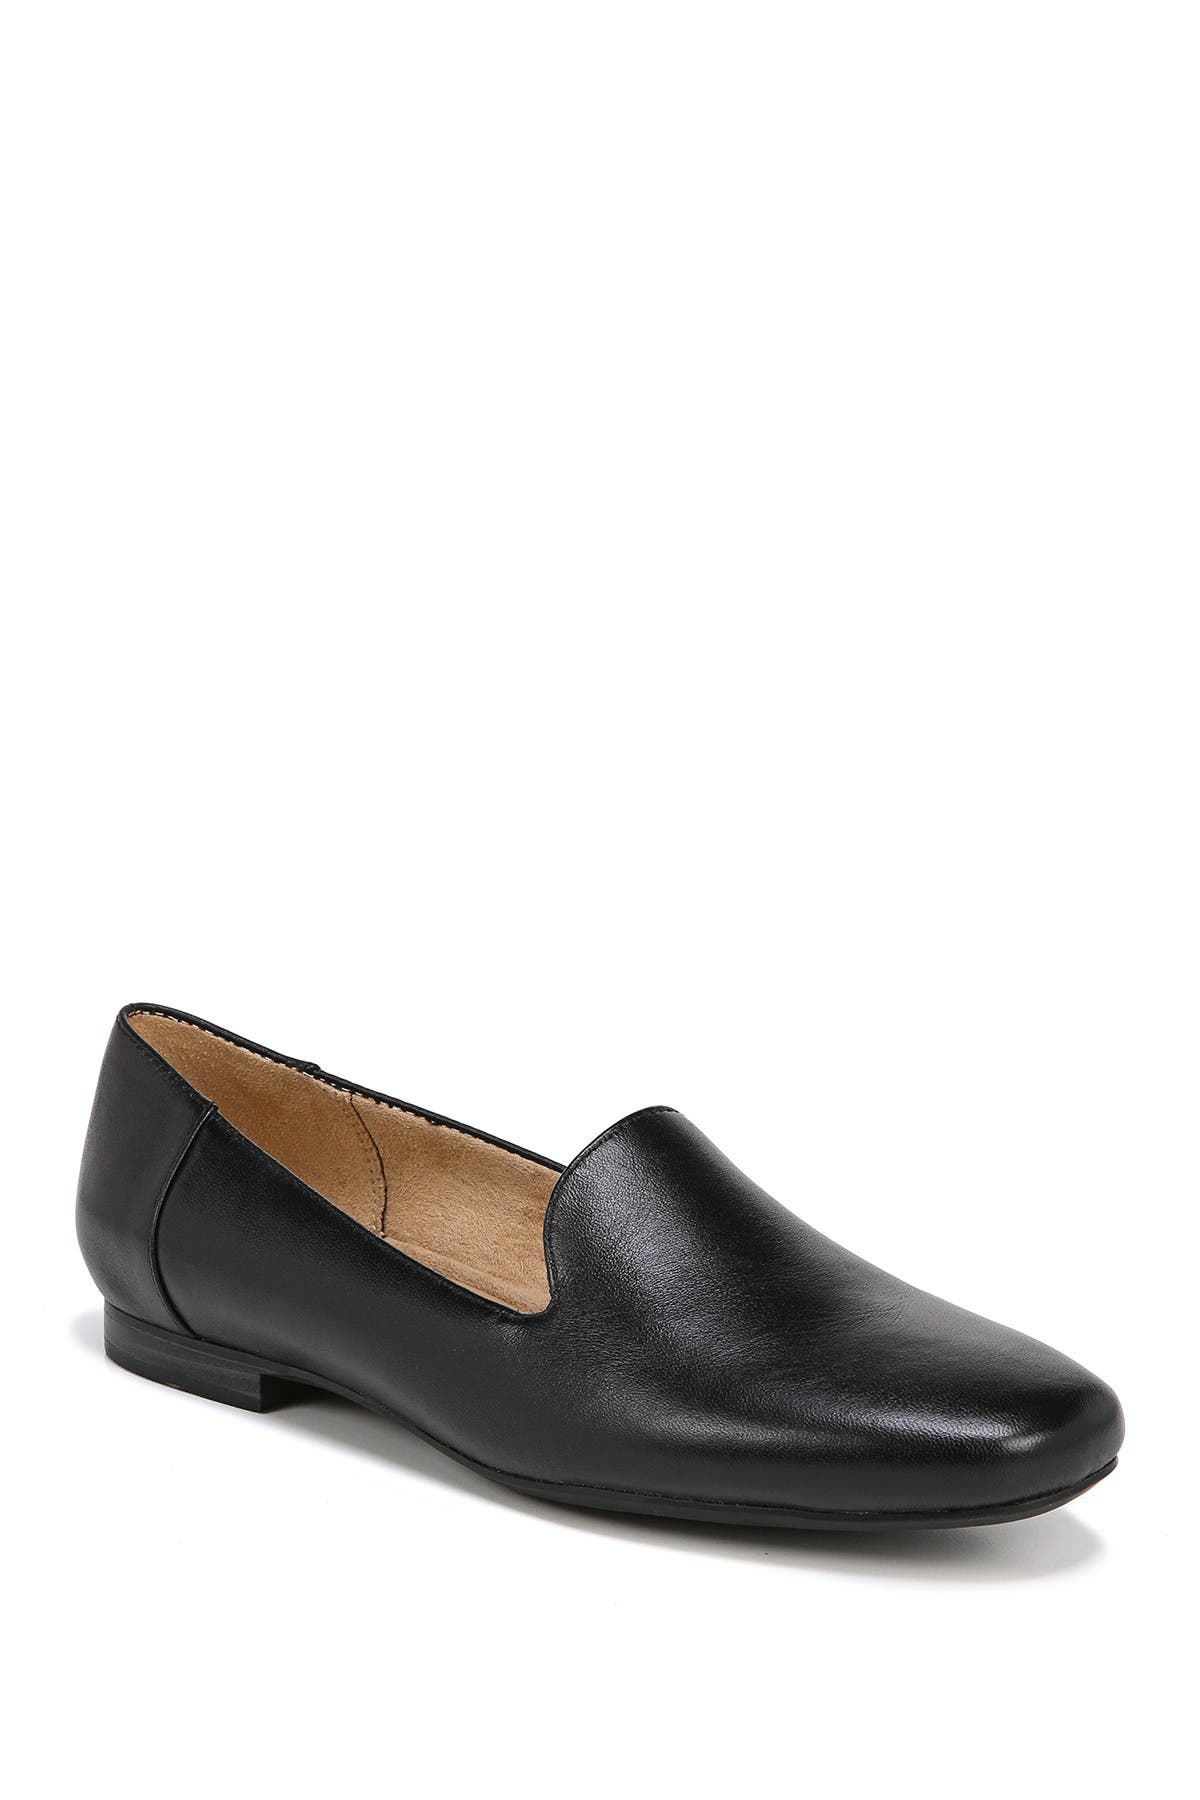 Image of Naturalizer Kit Slip-On Loafer - Wide Width Available